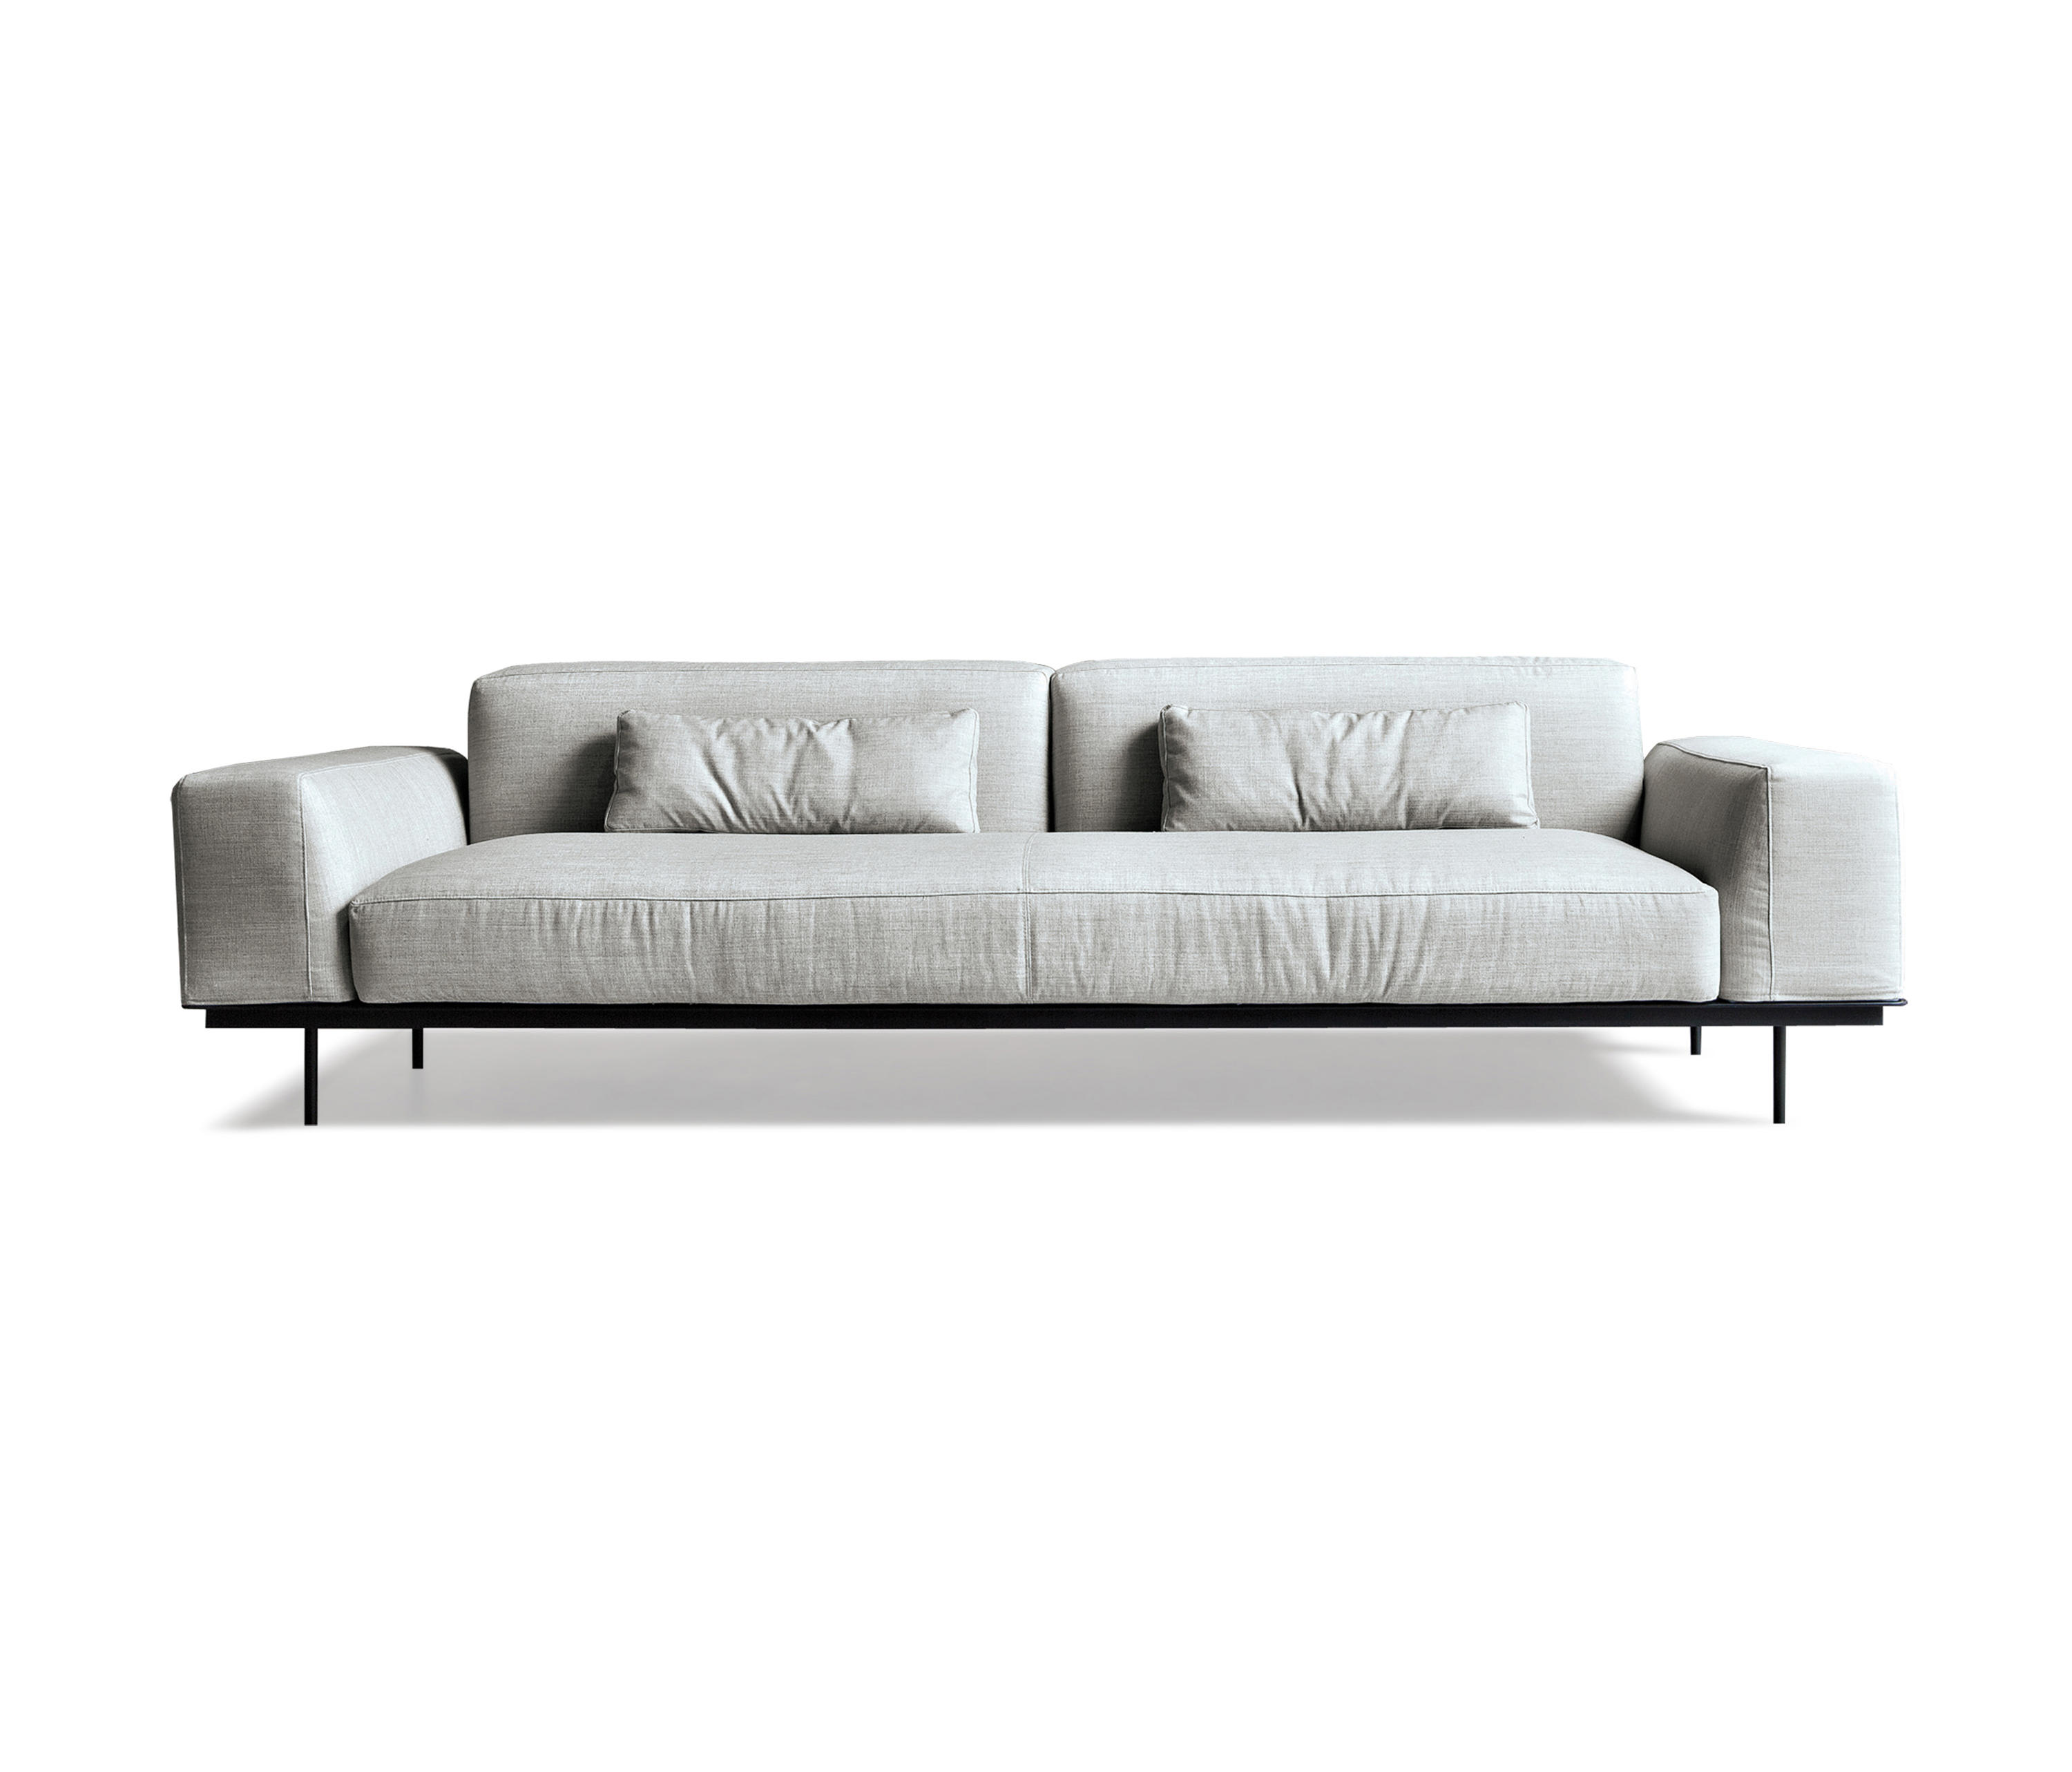 SIT UP 535 SOFA Sofas from Vibieffe